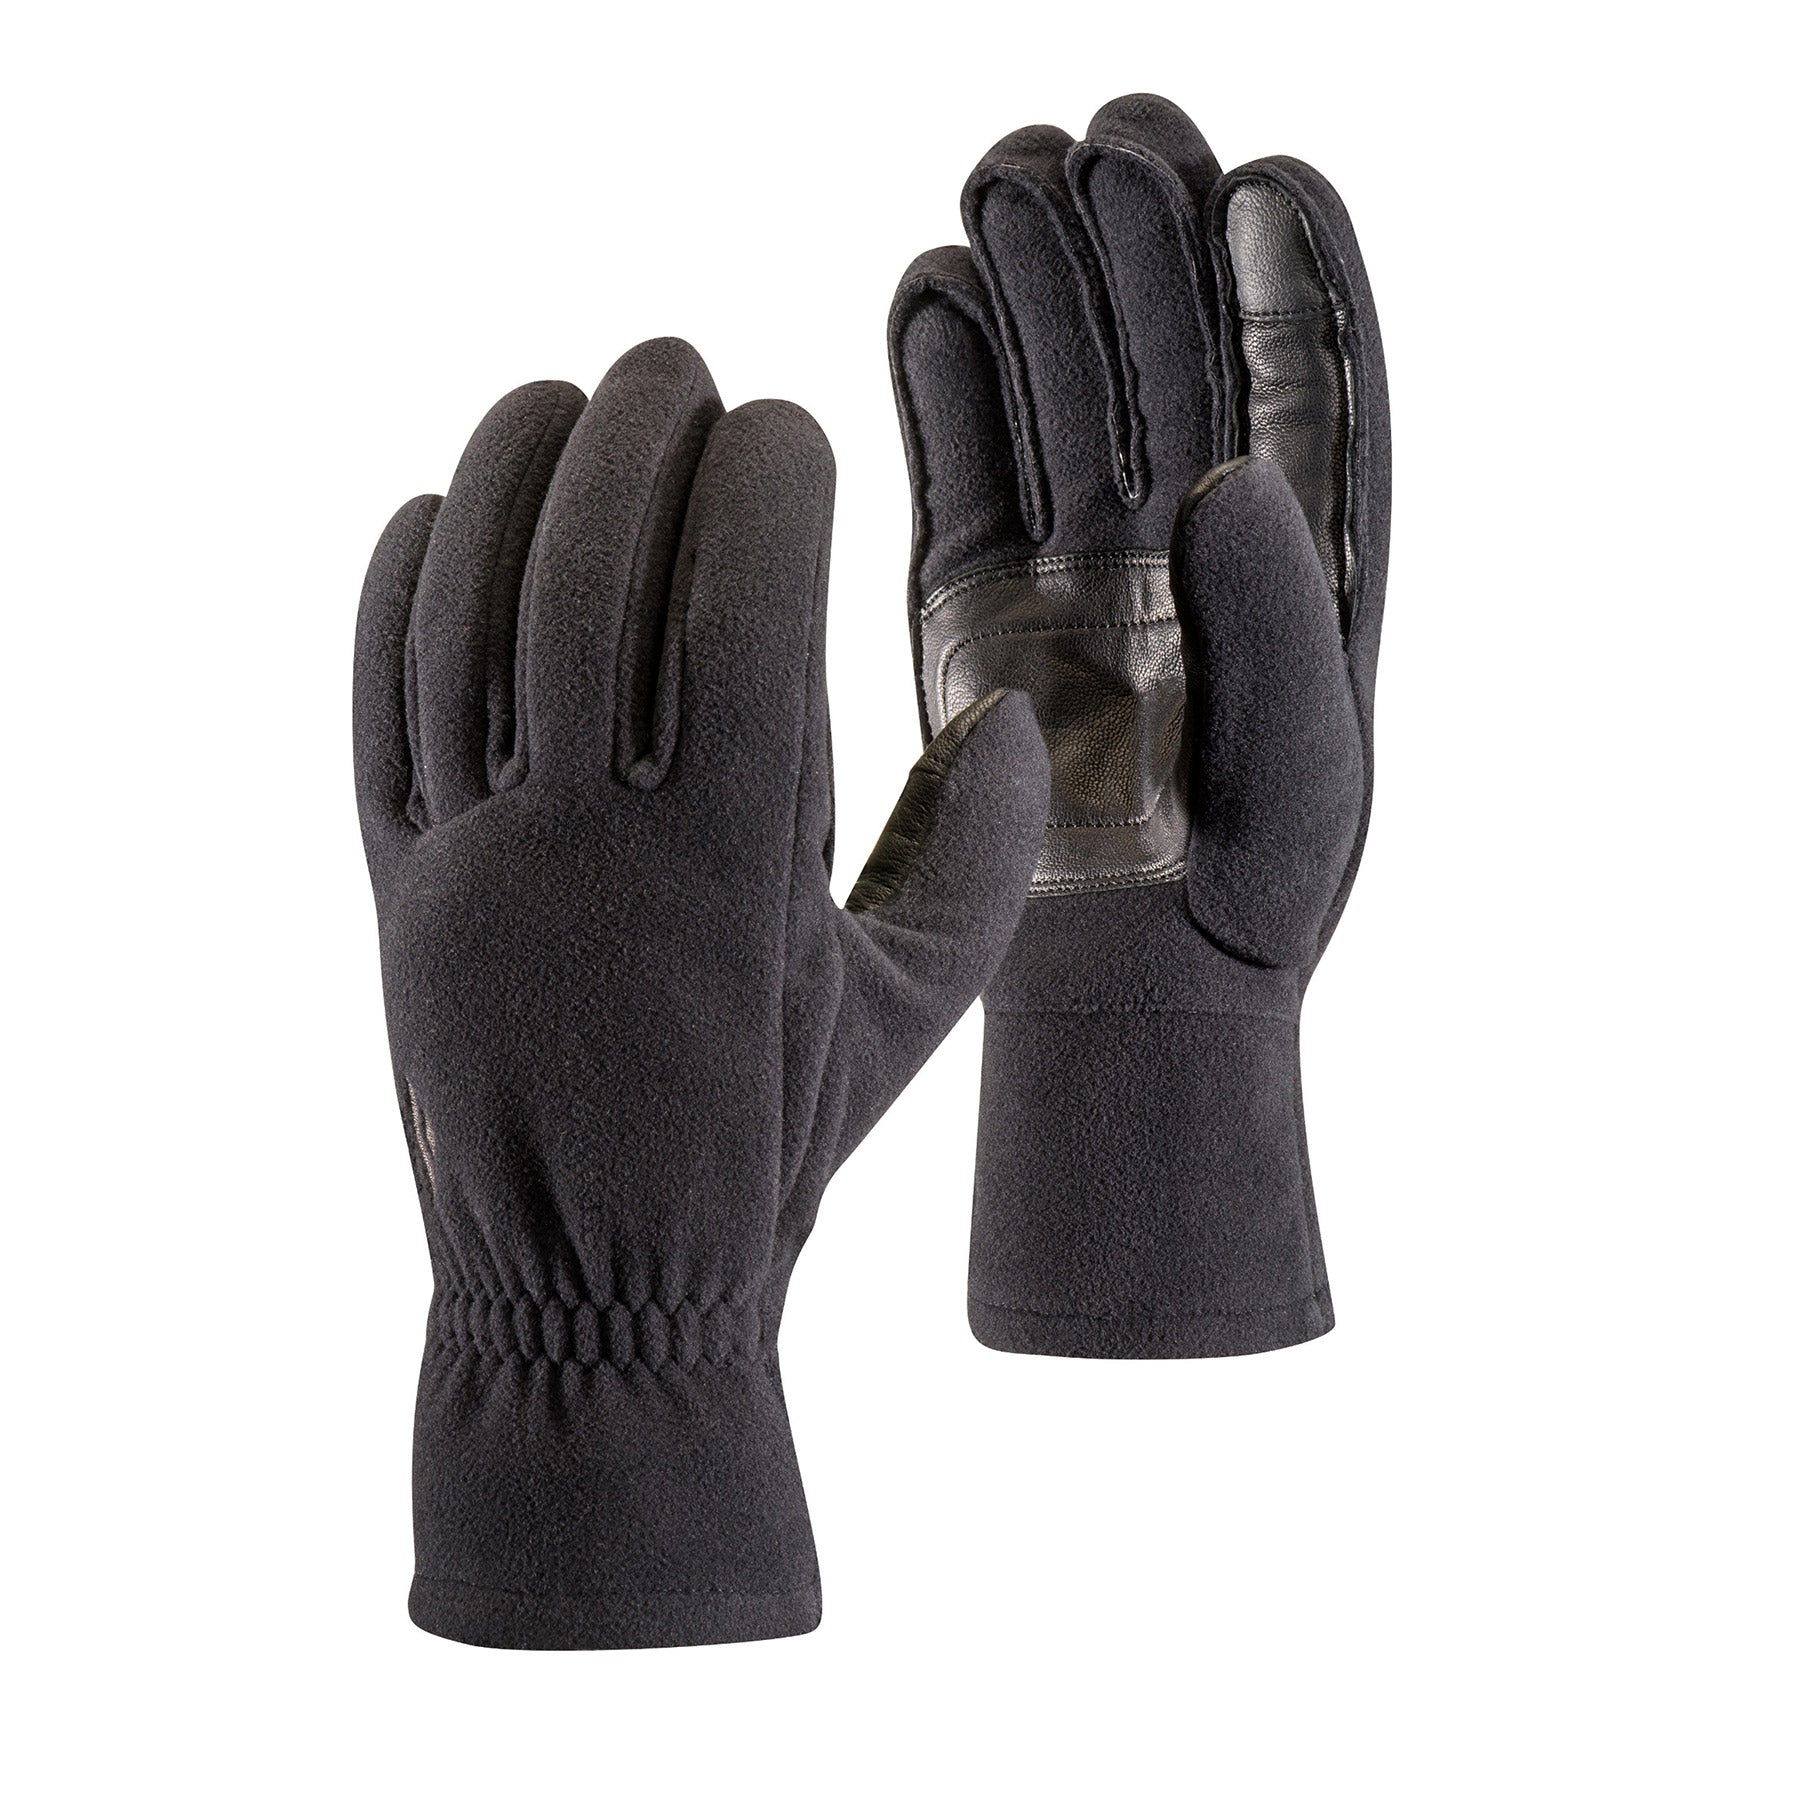 a pair of windproof fleece gloves